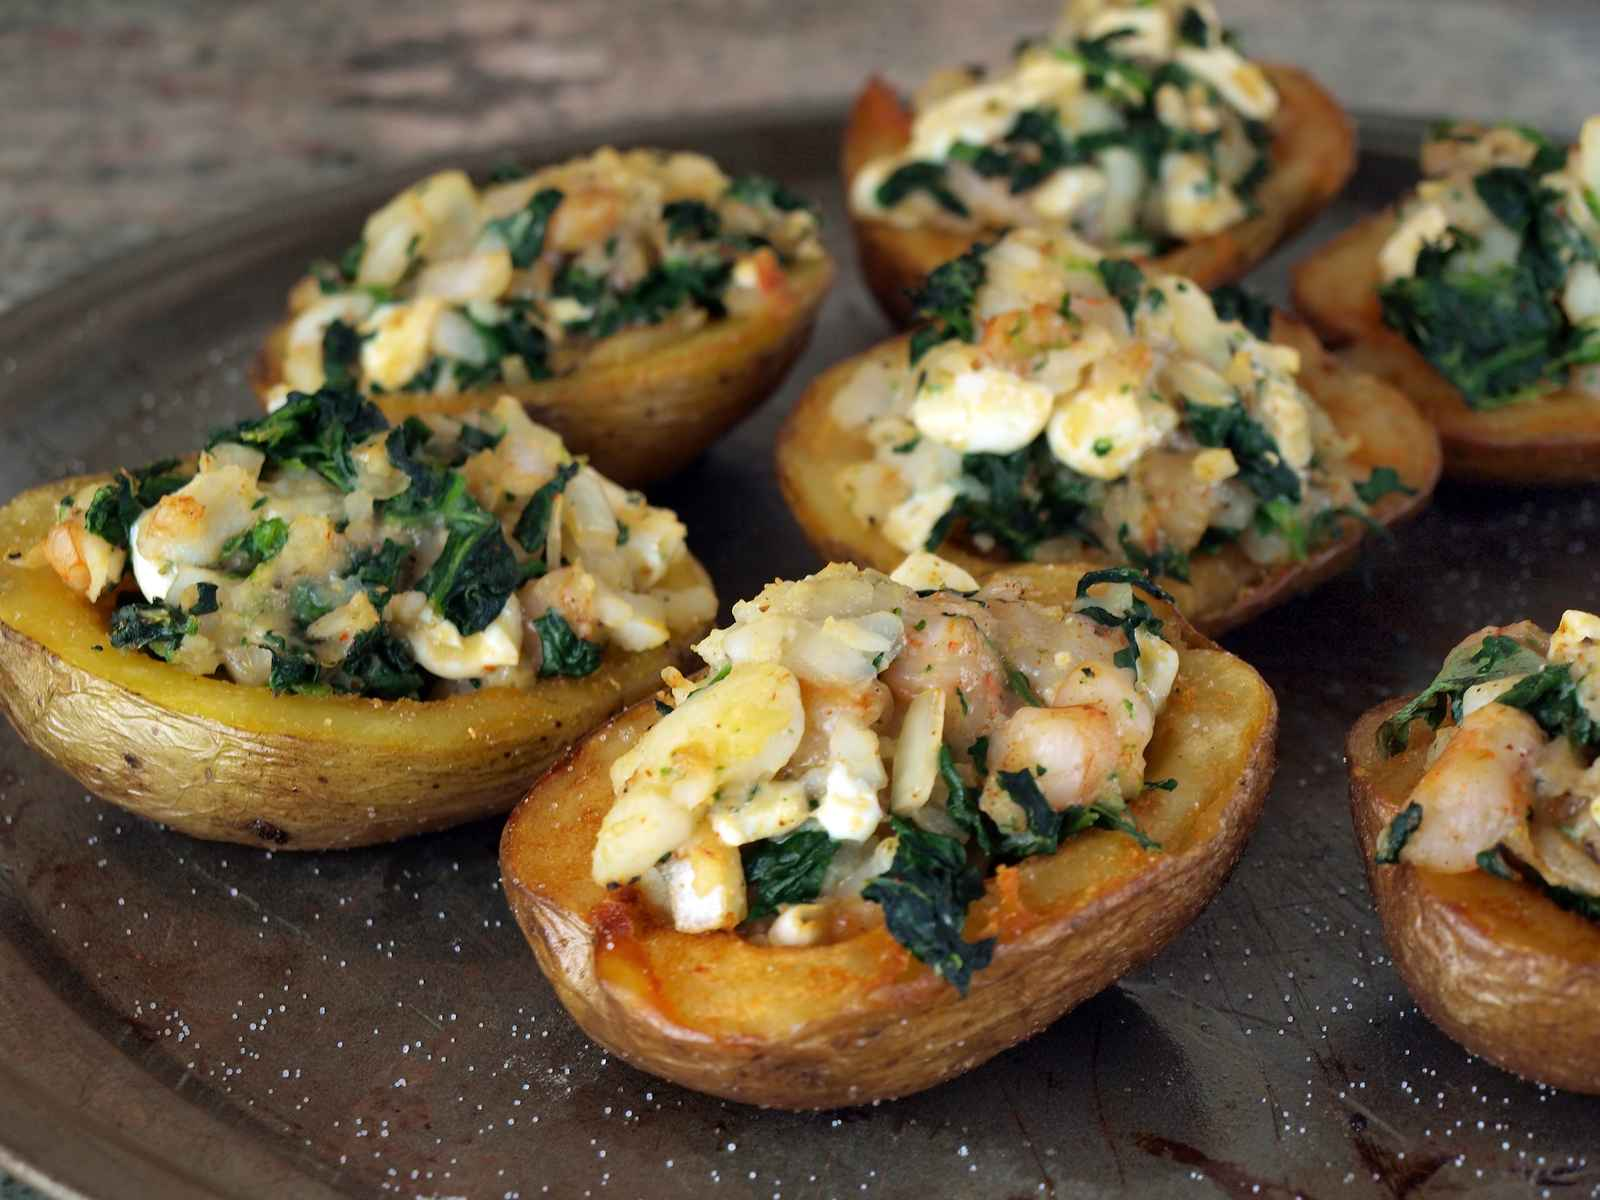 Kale Stuffed Potatoes